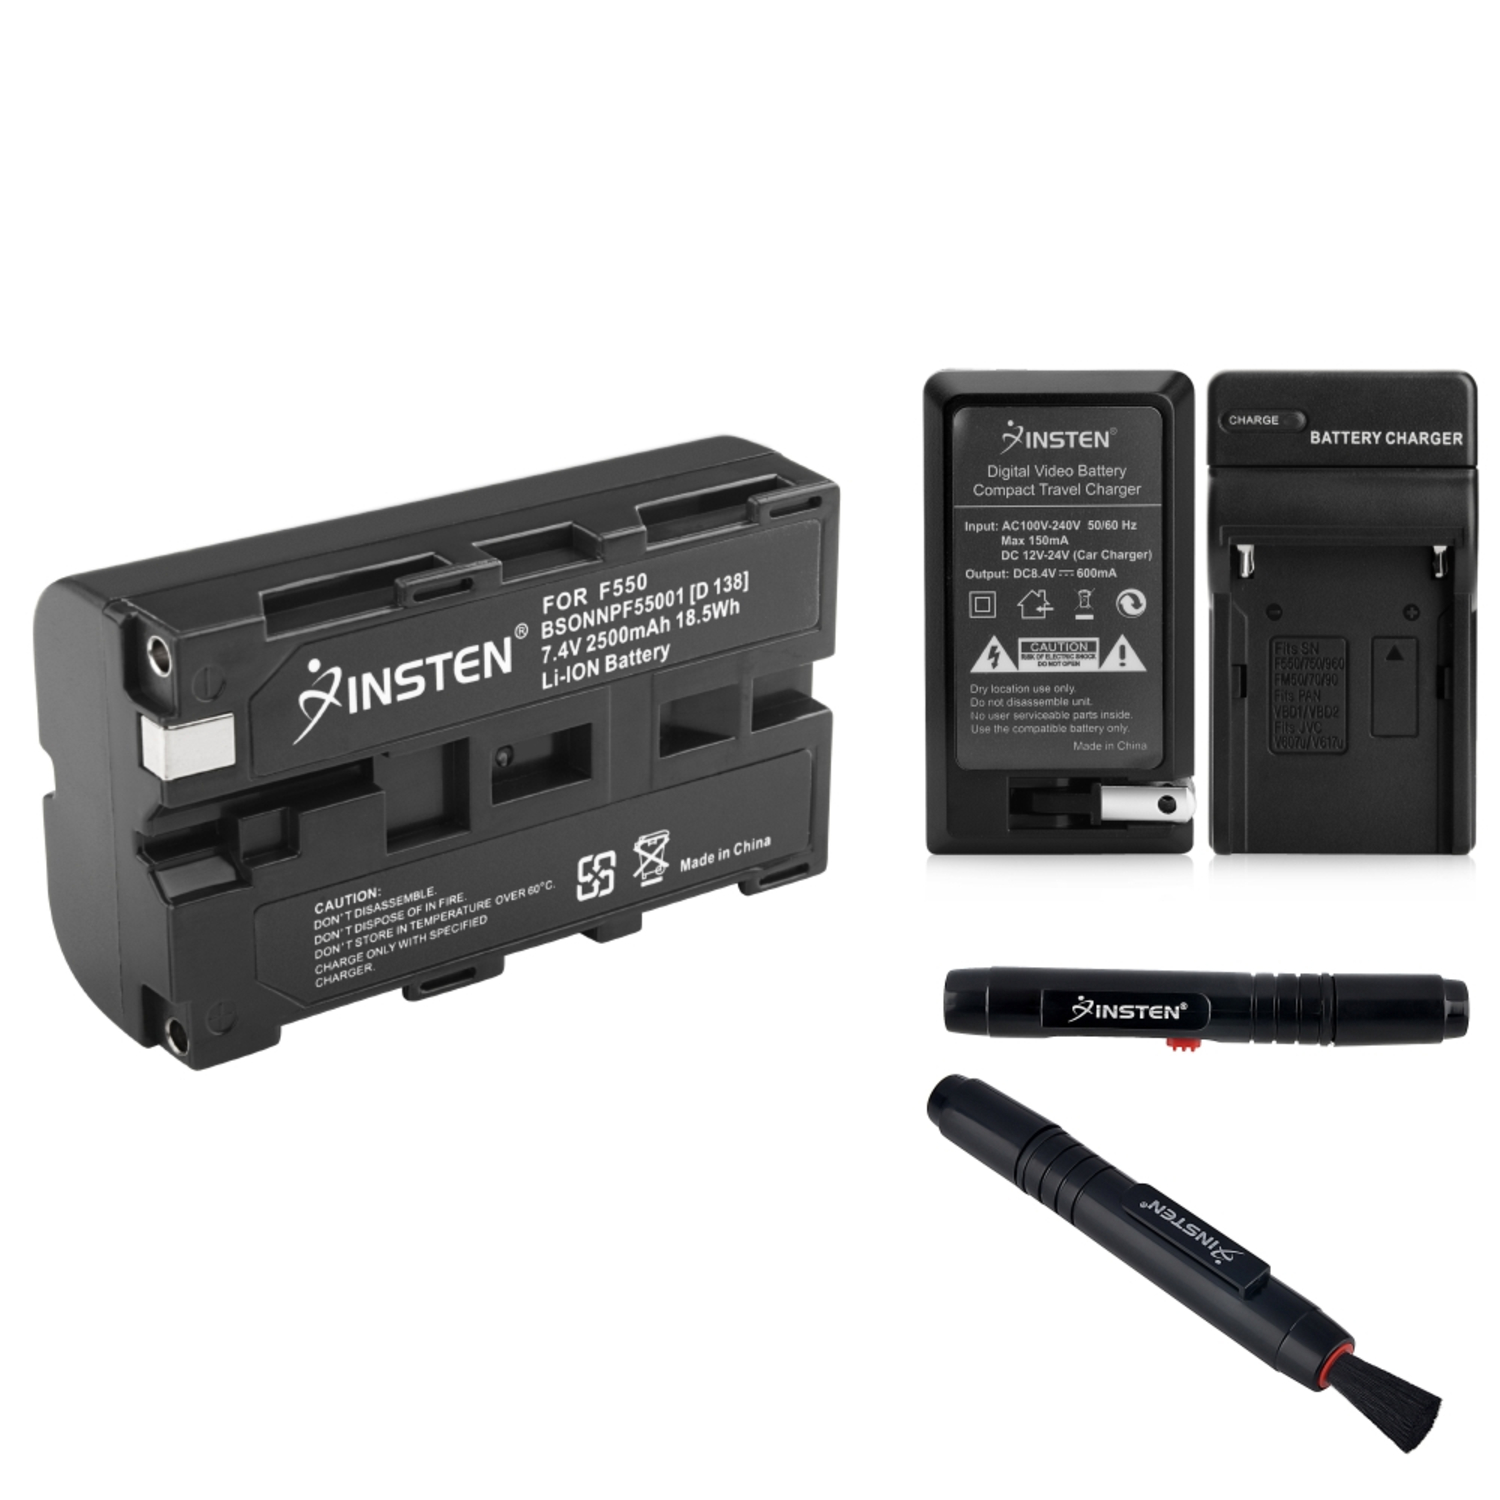 Insten Battery+Charger+Lens Cleaning Pen For Sony NP-F550 DC